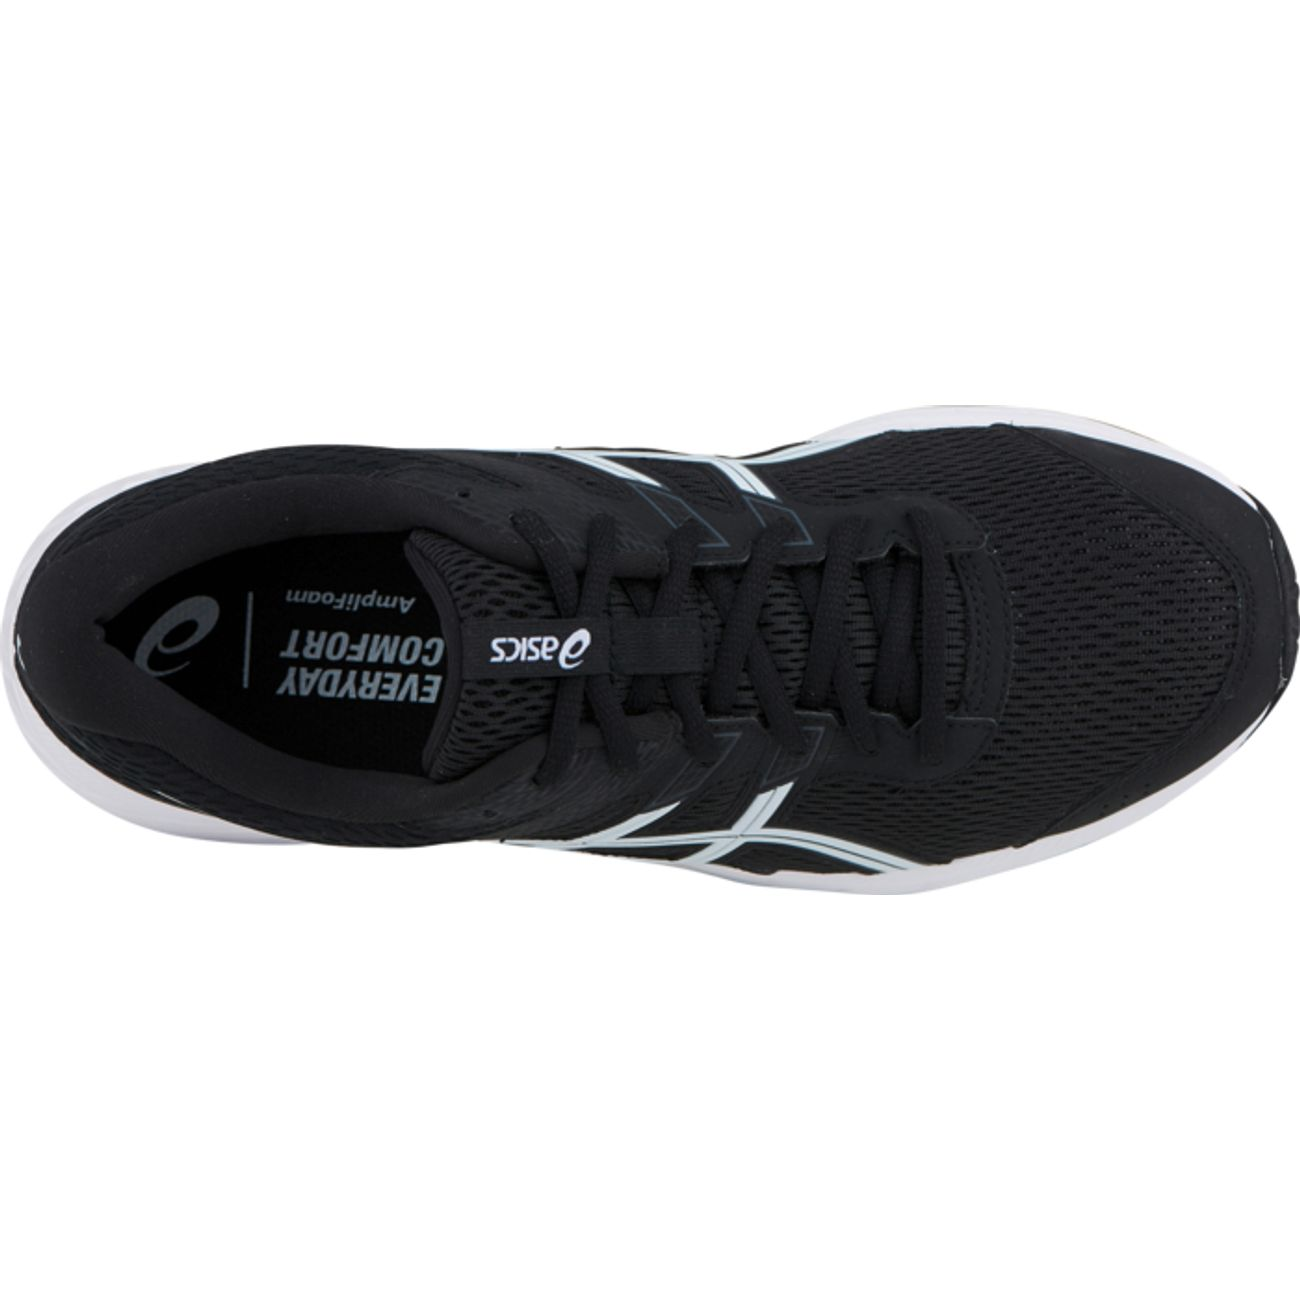 CHAUSSURES Route homme ASICS GEL-CONTEND 6